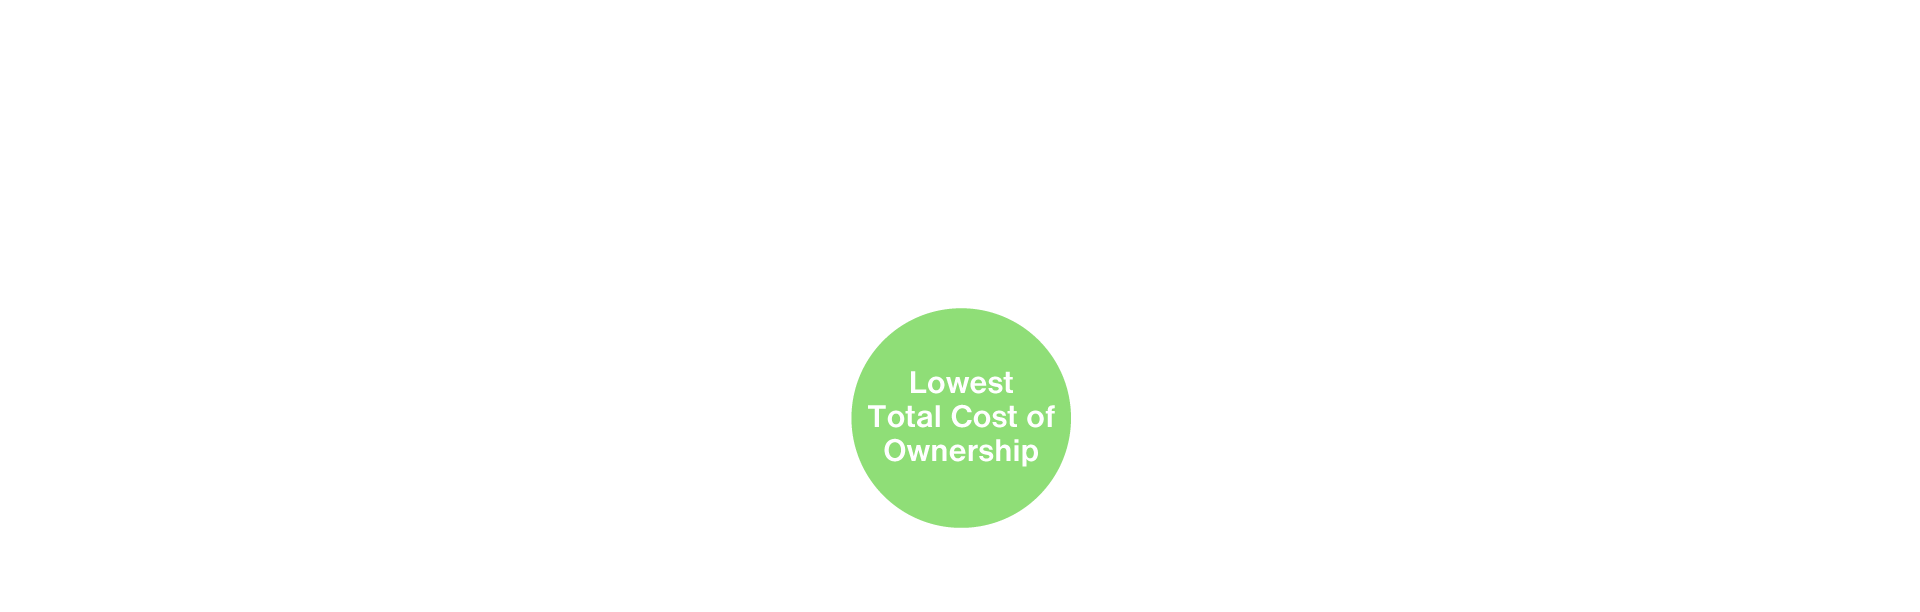 Lowest Cost of Ownership